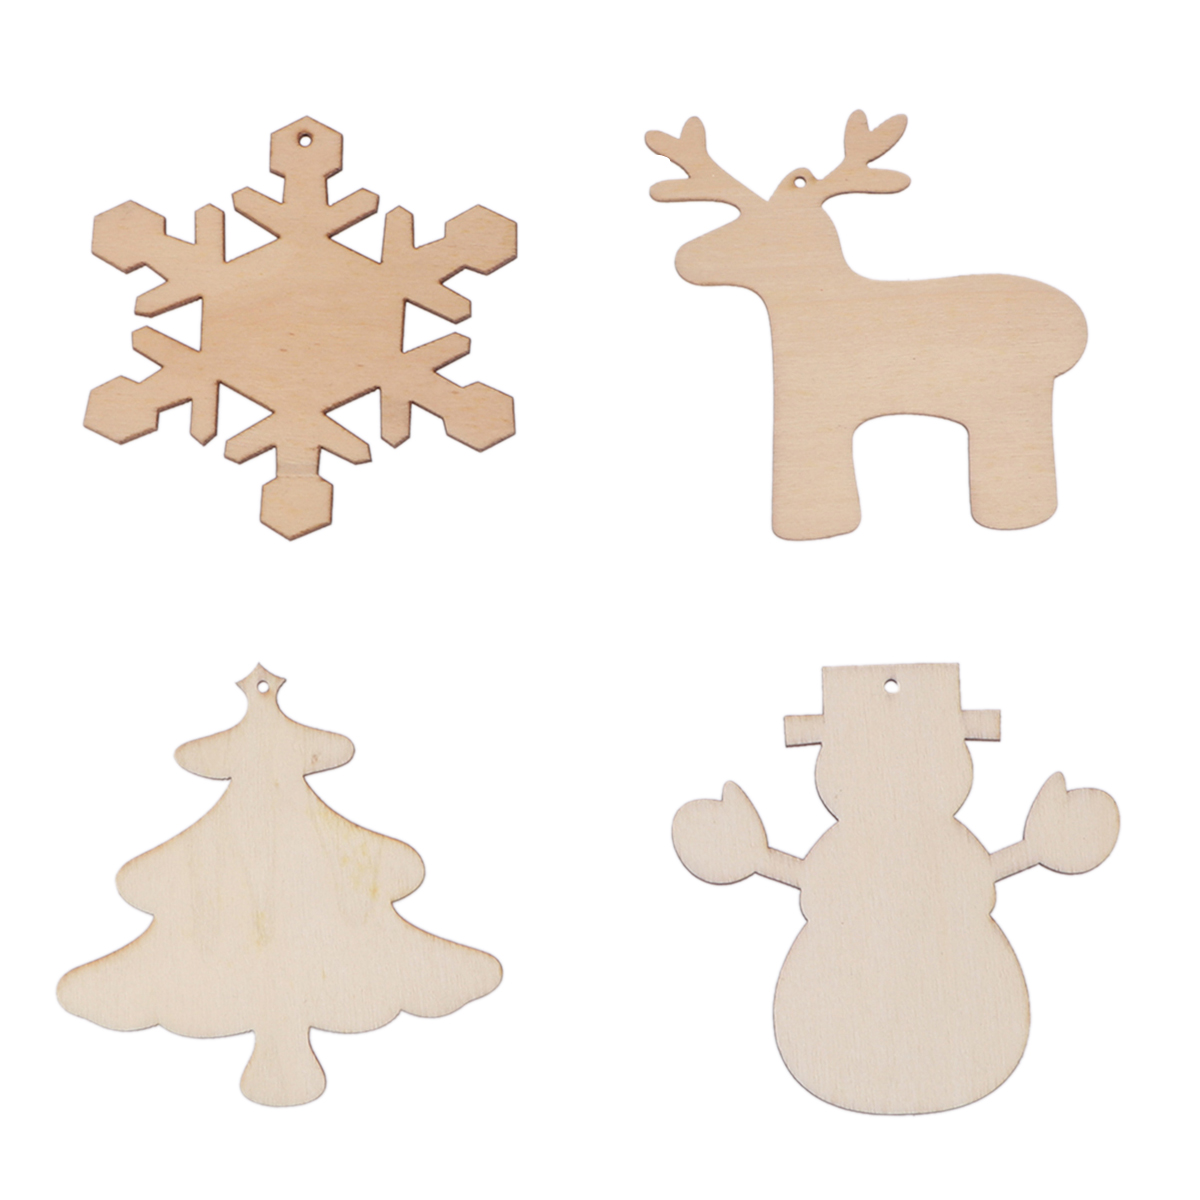 Christmas Tree Cutout.Us 1 69 39 Off 4pcs Multi Shaped Wooden Cutout Veneers Slices Snowflake Deer Snowman Pendants Ornaments Tag For Christmas Tree Decoration In Wood